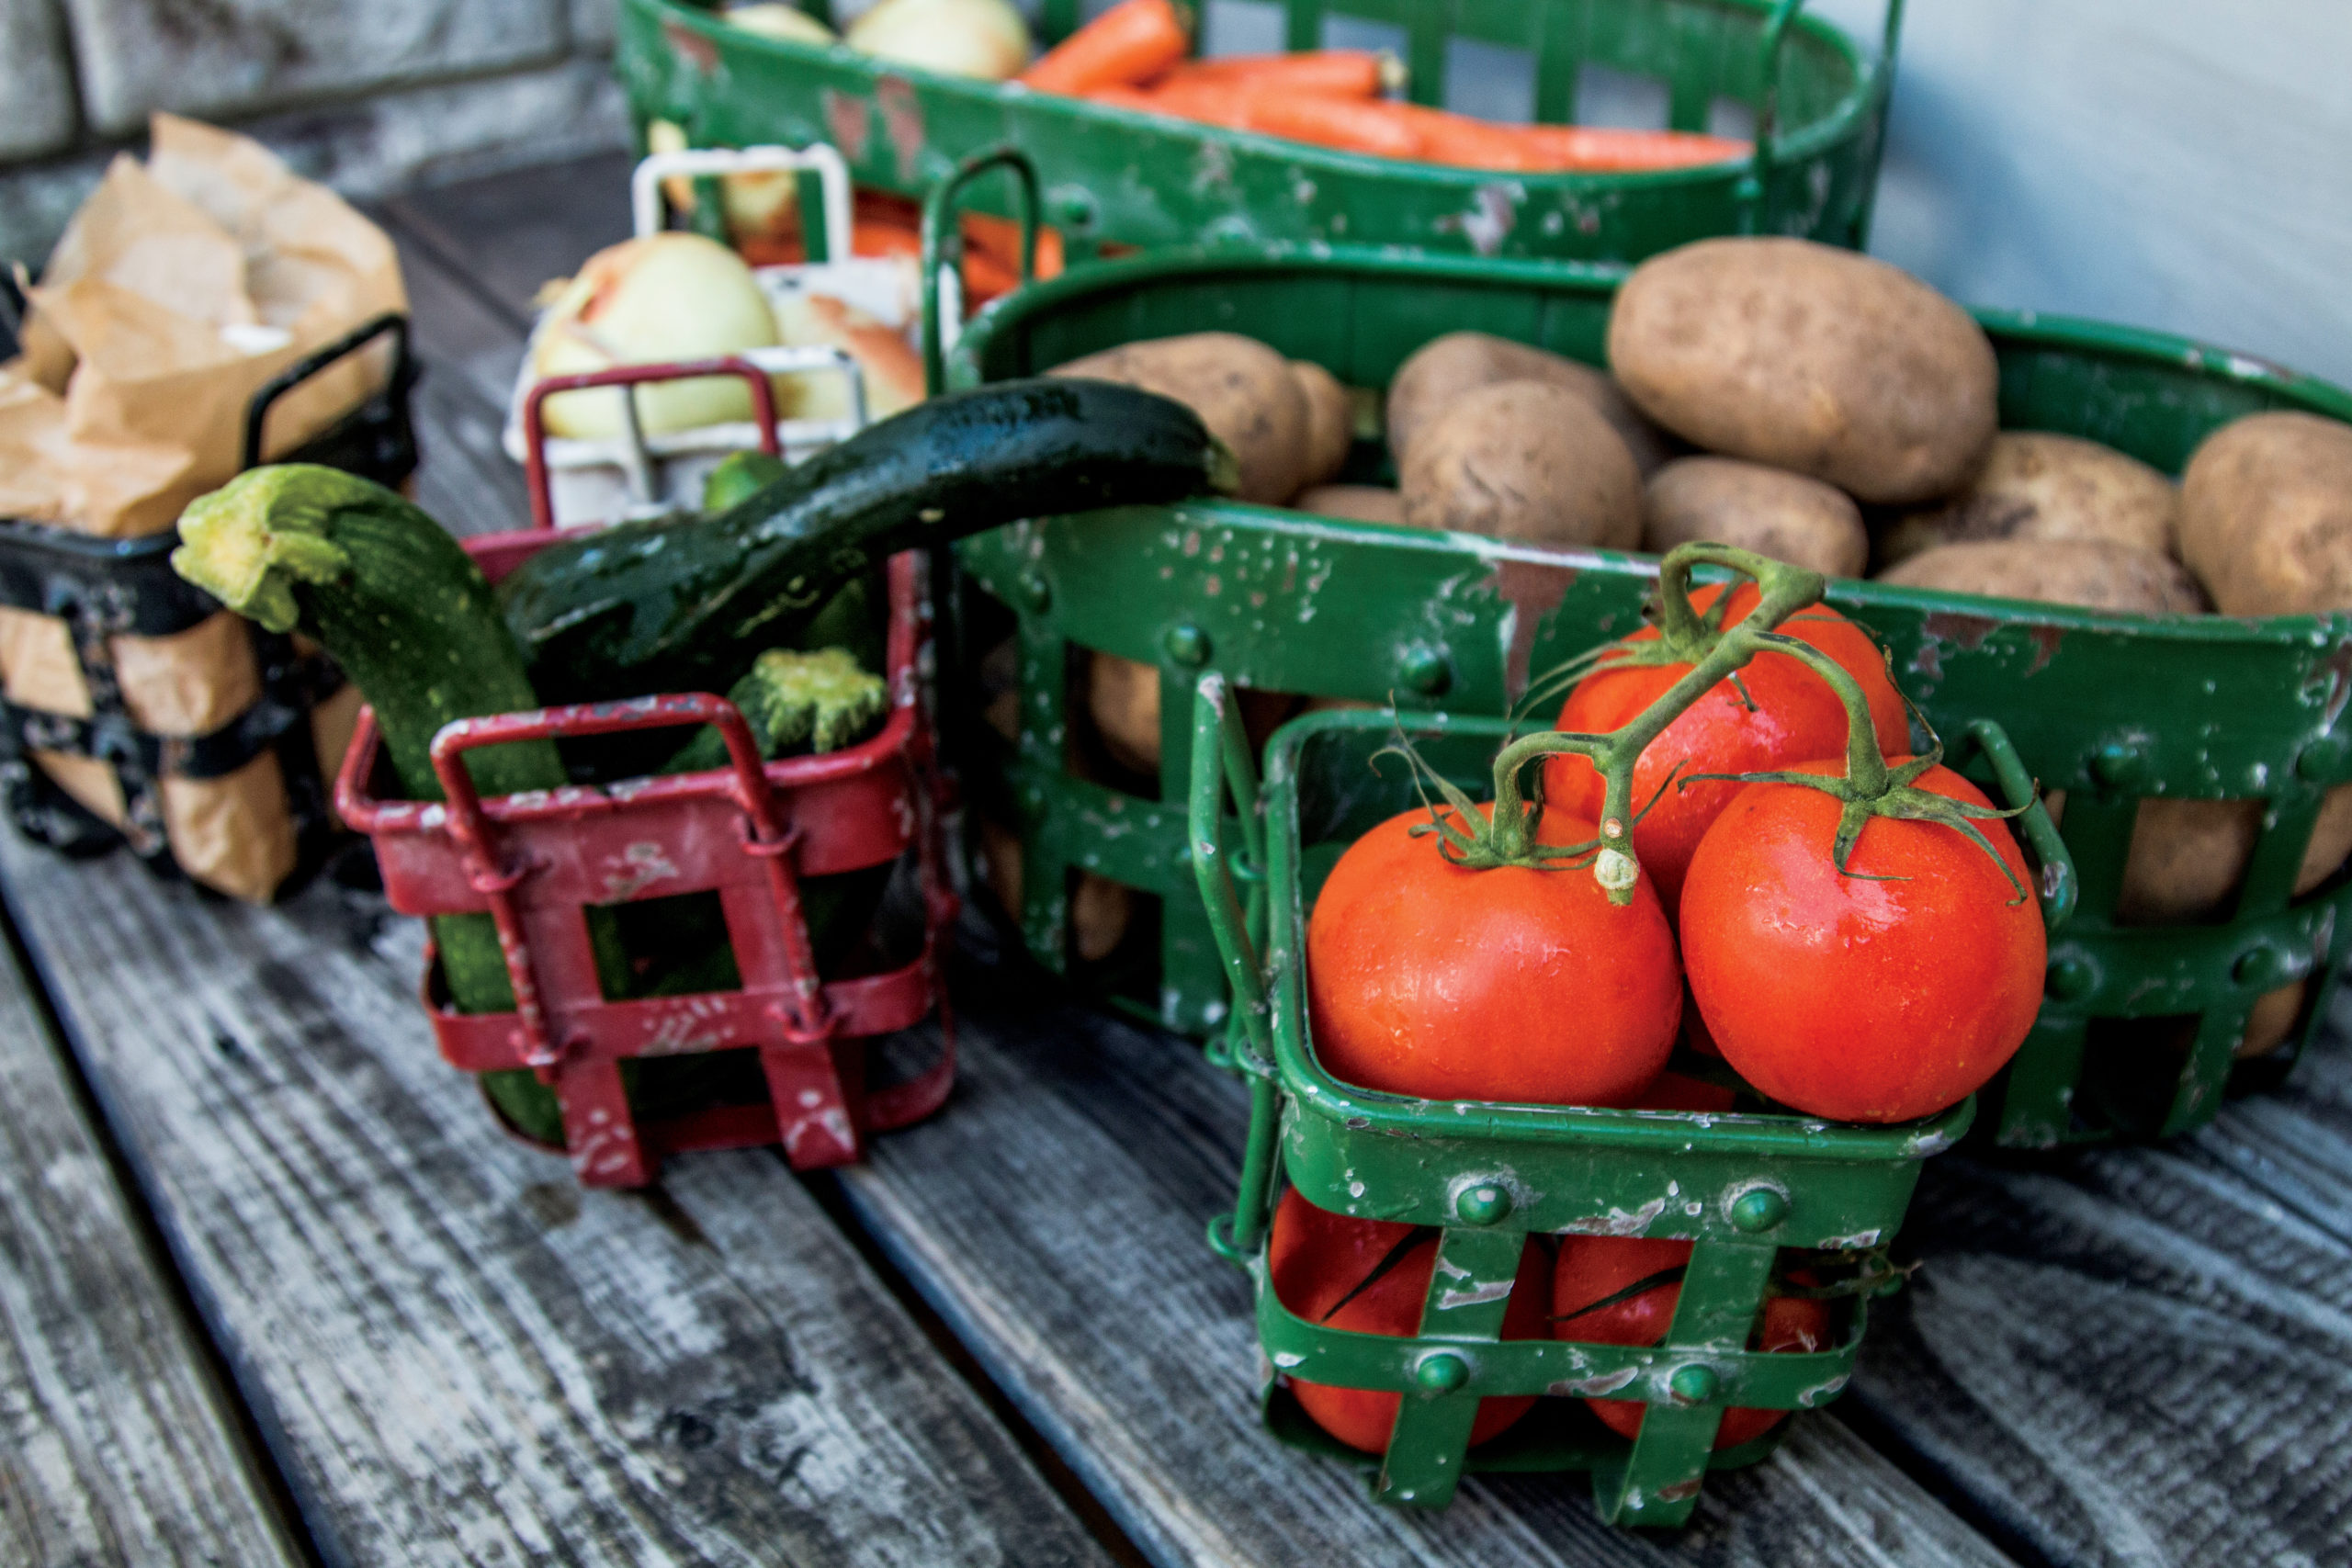 CSAs, or Community Supported Agriculture, supports the local economy and keeps residents stocked with freshly grown food